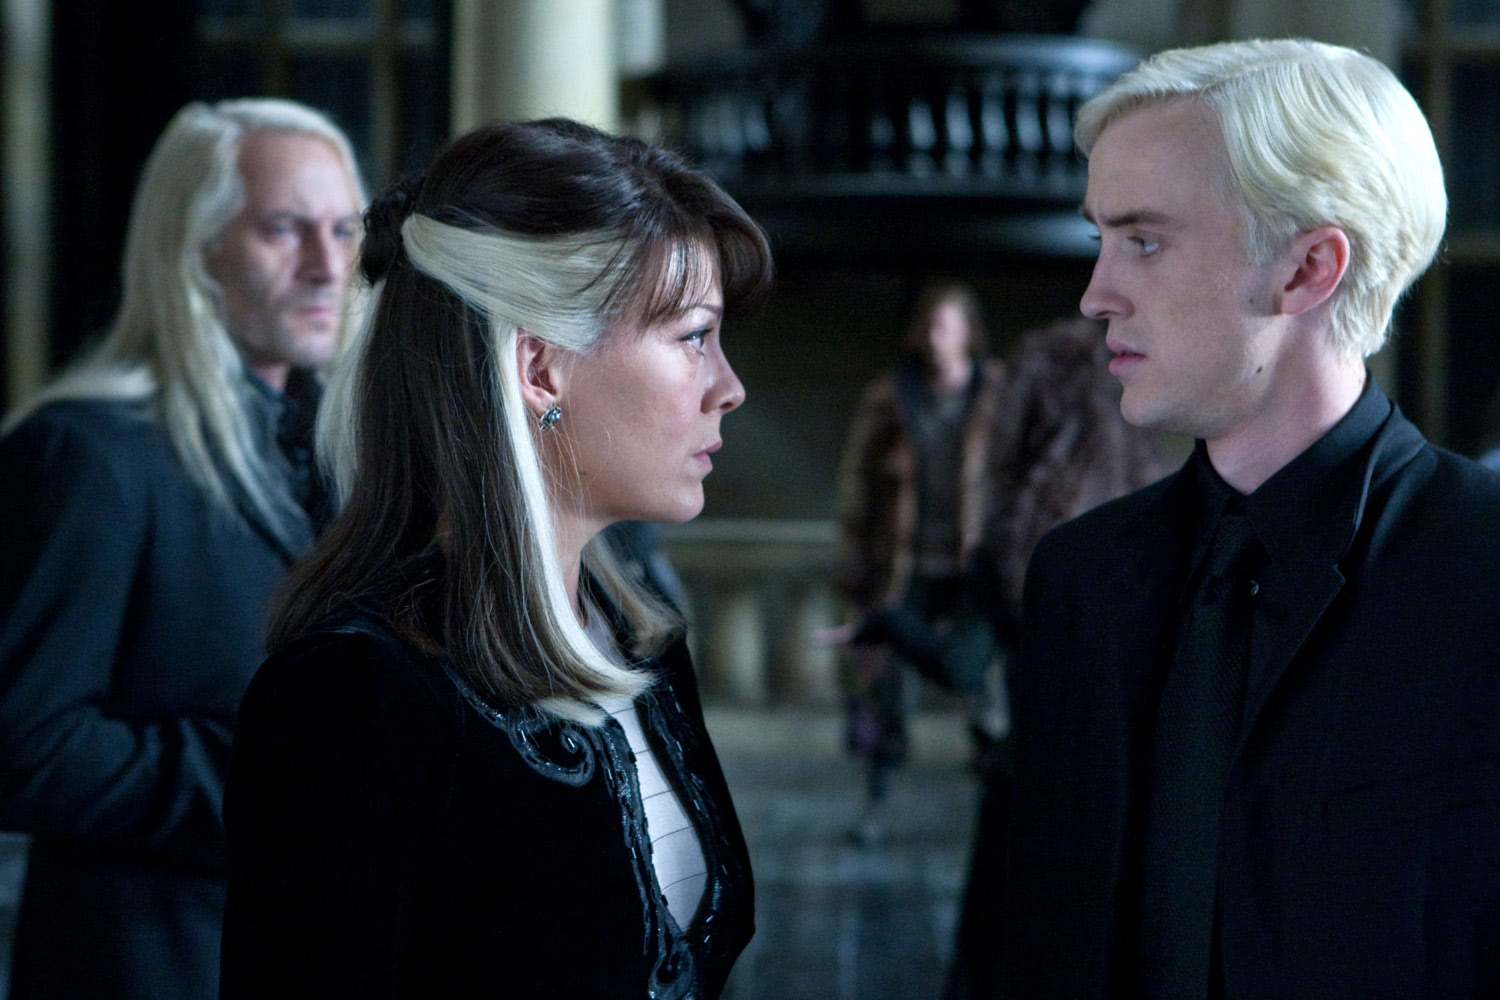 Narcissa and Draco in Malfoy Manor